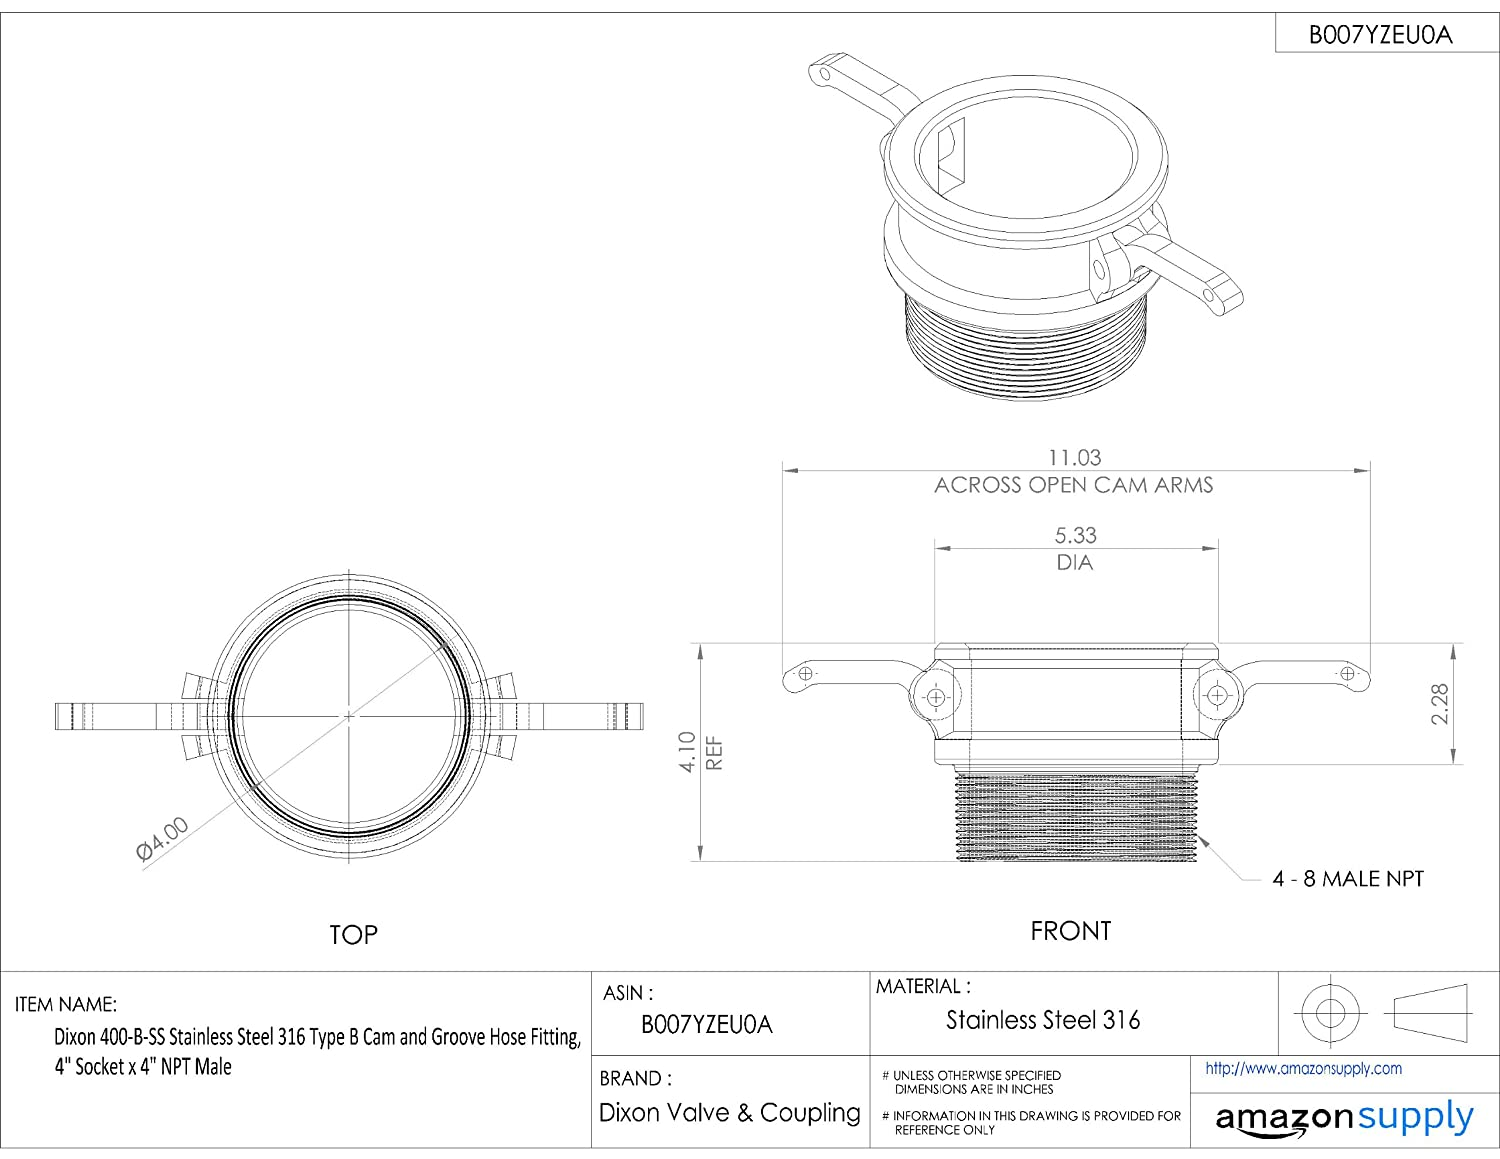 1 Socket x 1 NPT Male Dixon 100-B-SS Stainless Steel 316 Type B Cam and Groove Hose Fitting